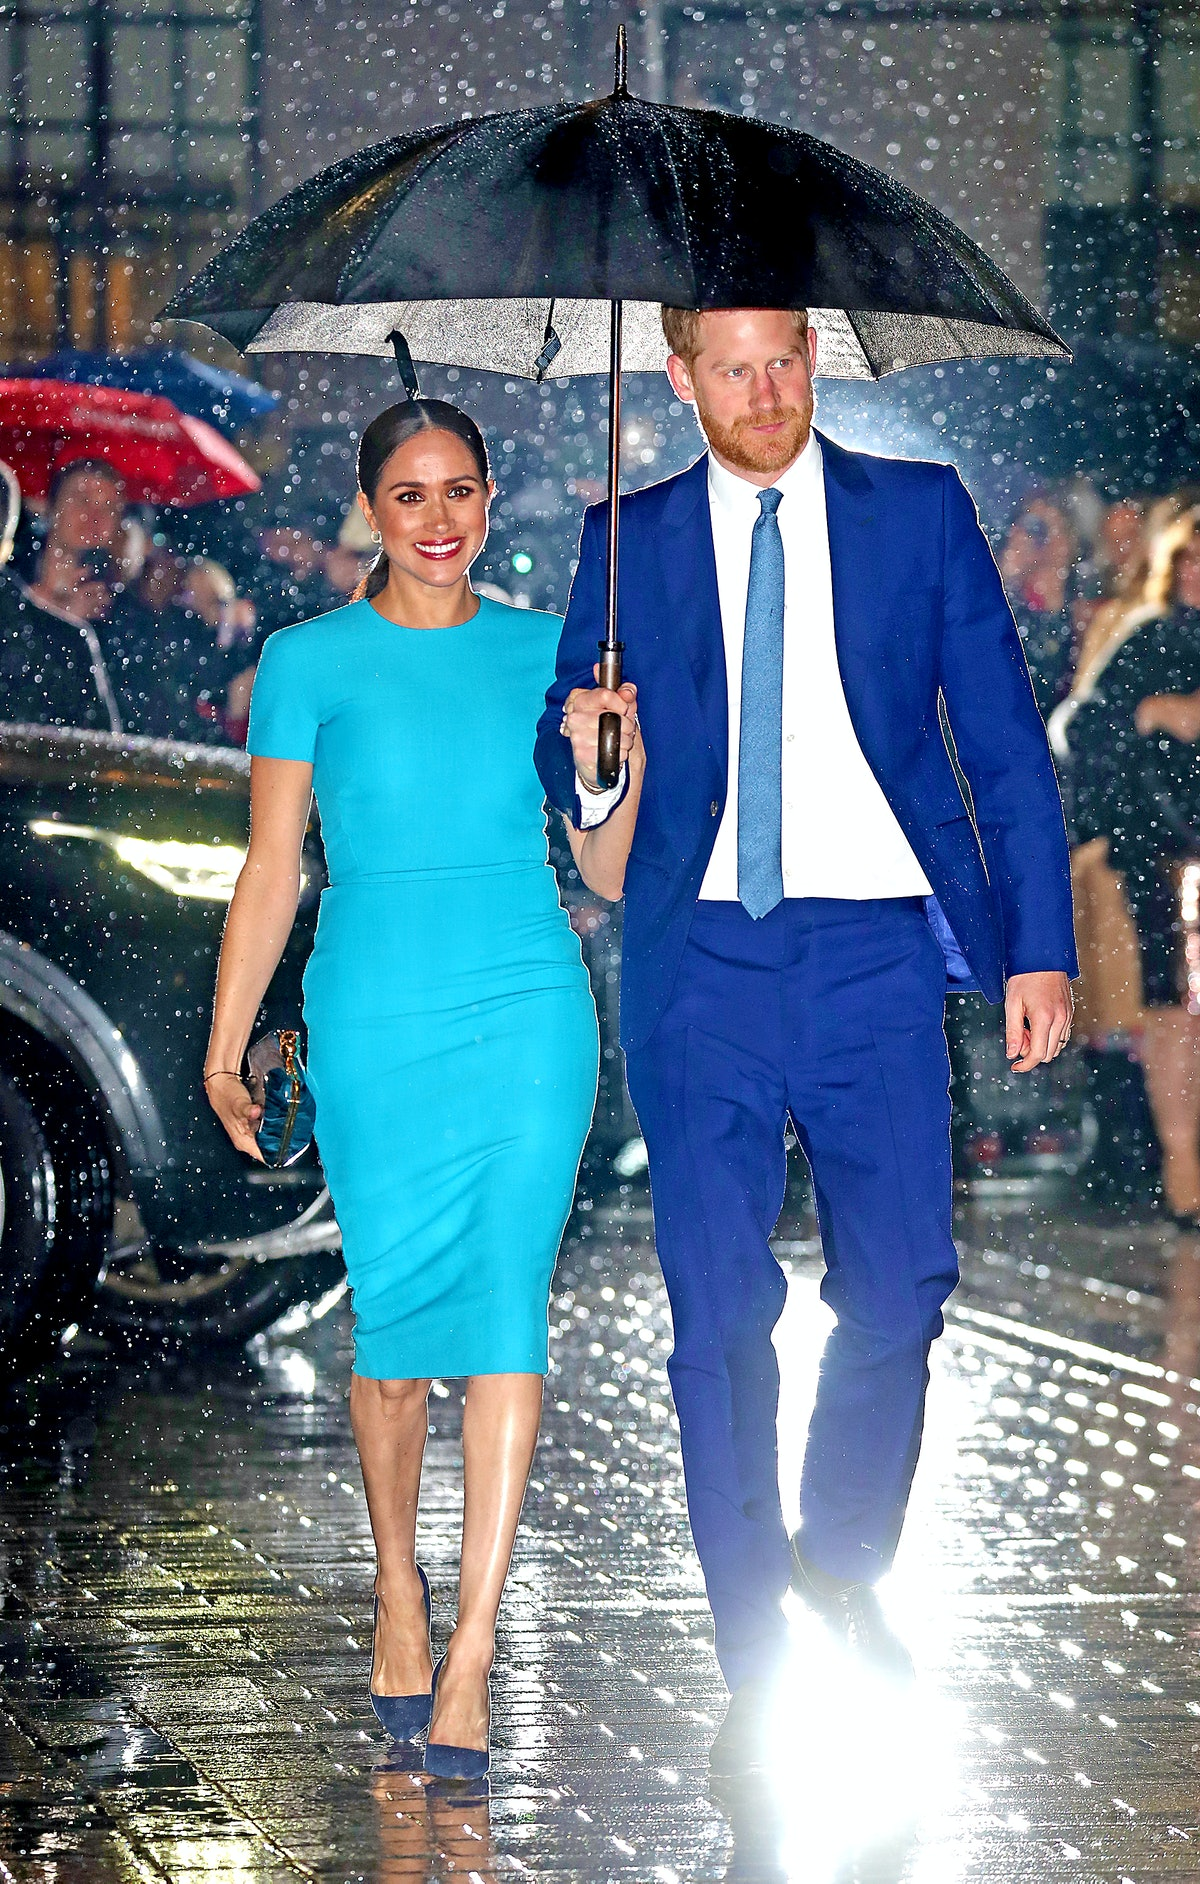 The Duke and Duchess of Sussex attend The Endeavour Fund Awards in London, England in March 2020.